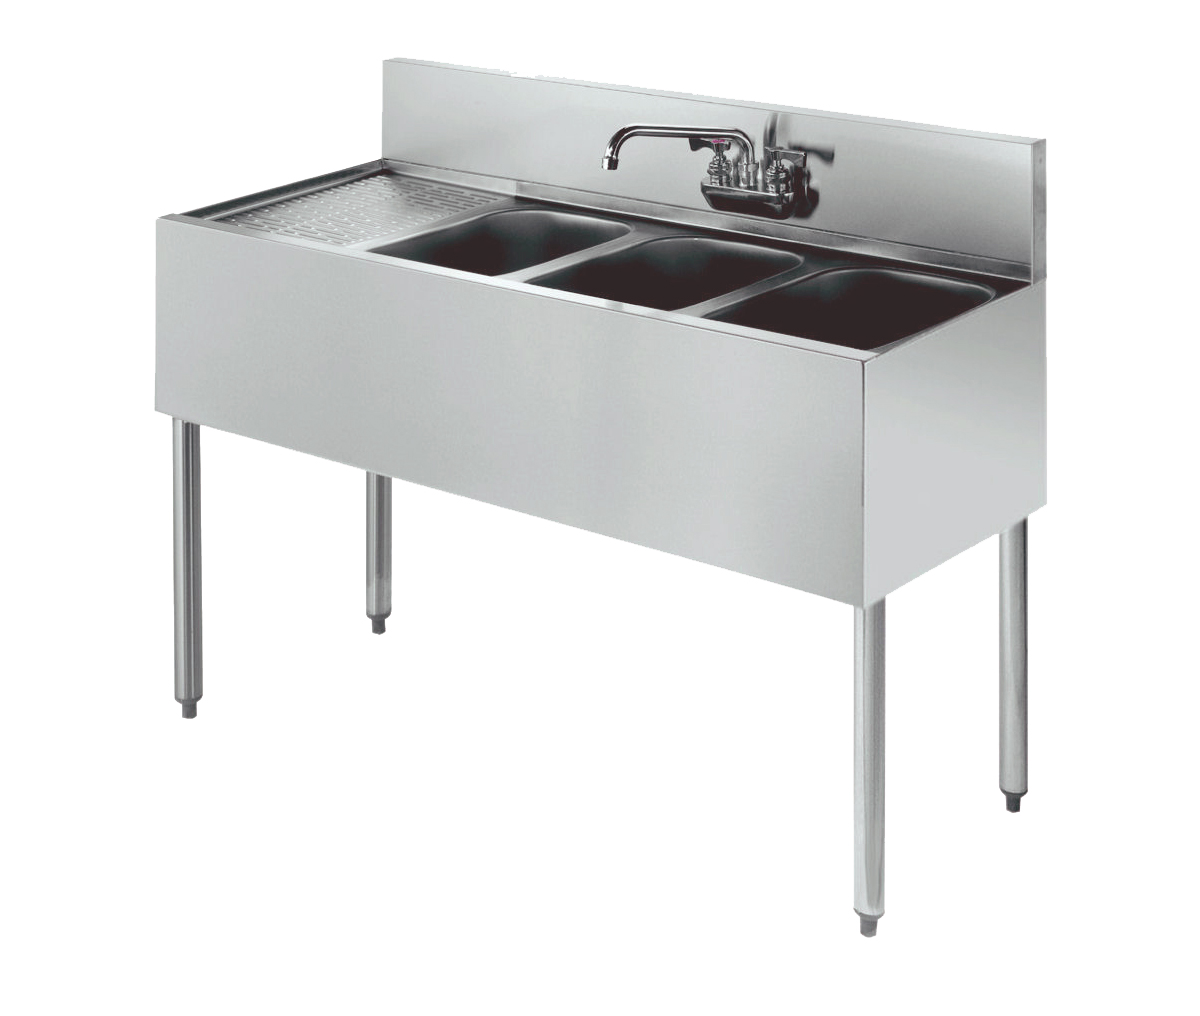 Krowne Metal KR18-43R underbar sink units